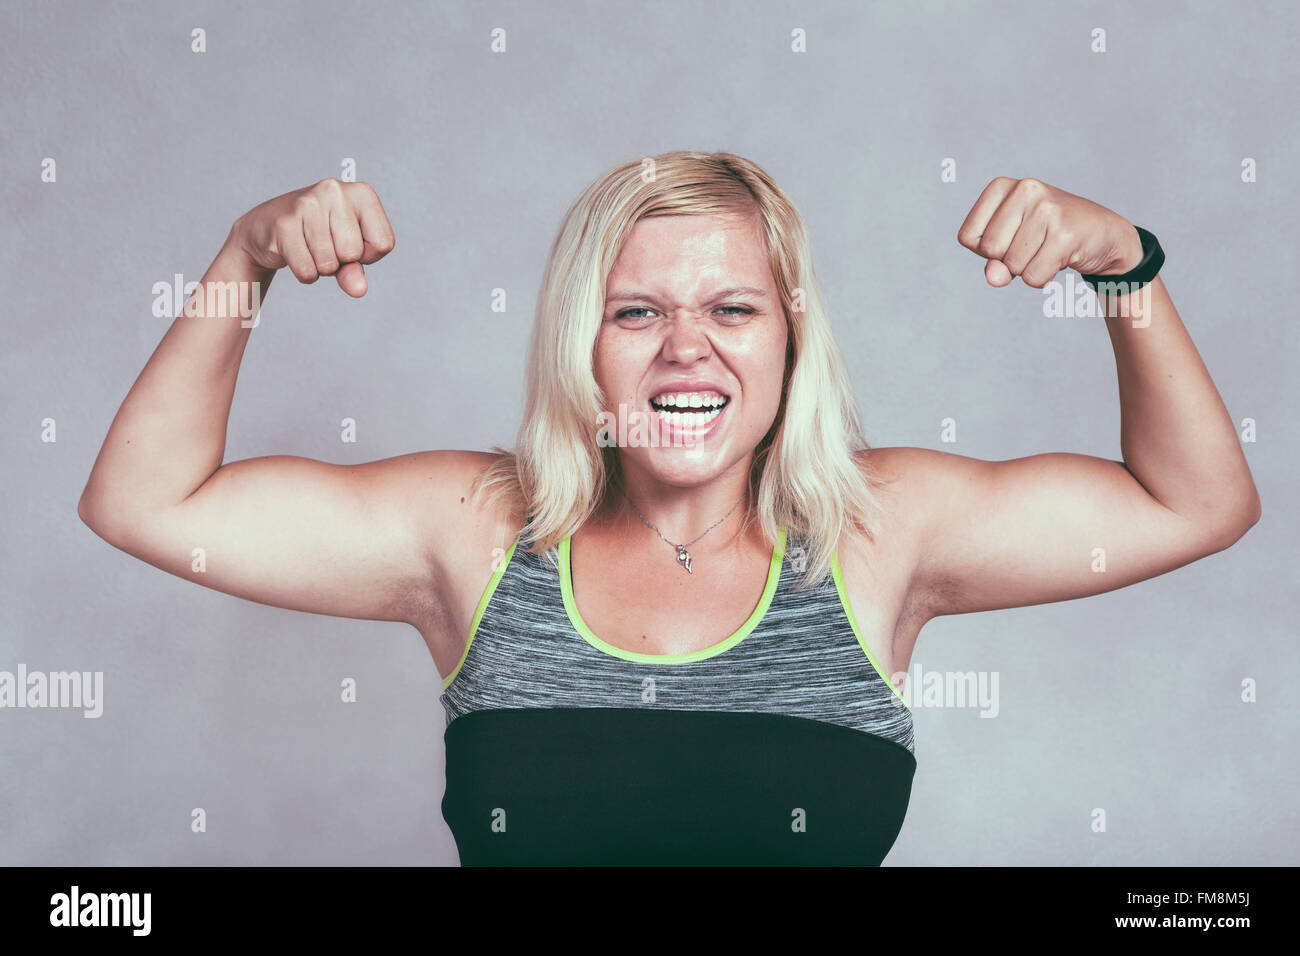 Strong excited muscular woman flexing her muscles. Young blond sporty female showing arms and biceps. - Stock Image